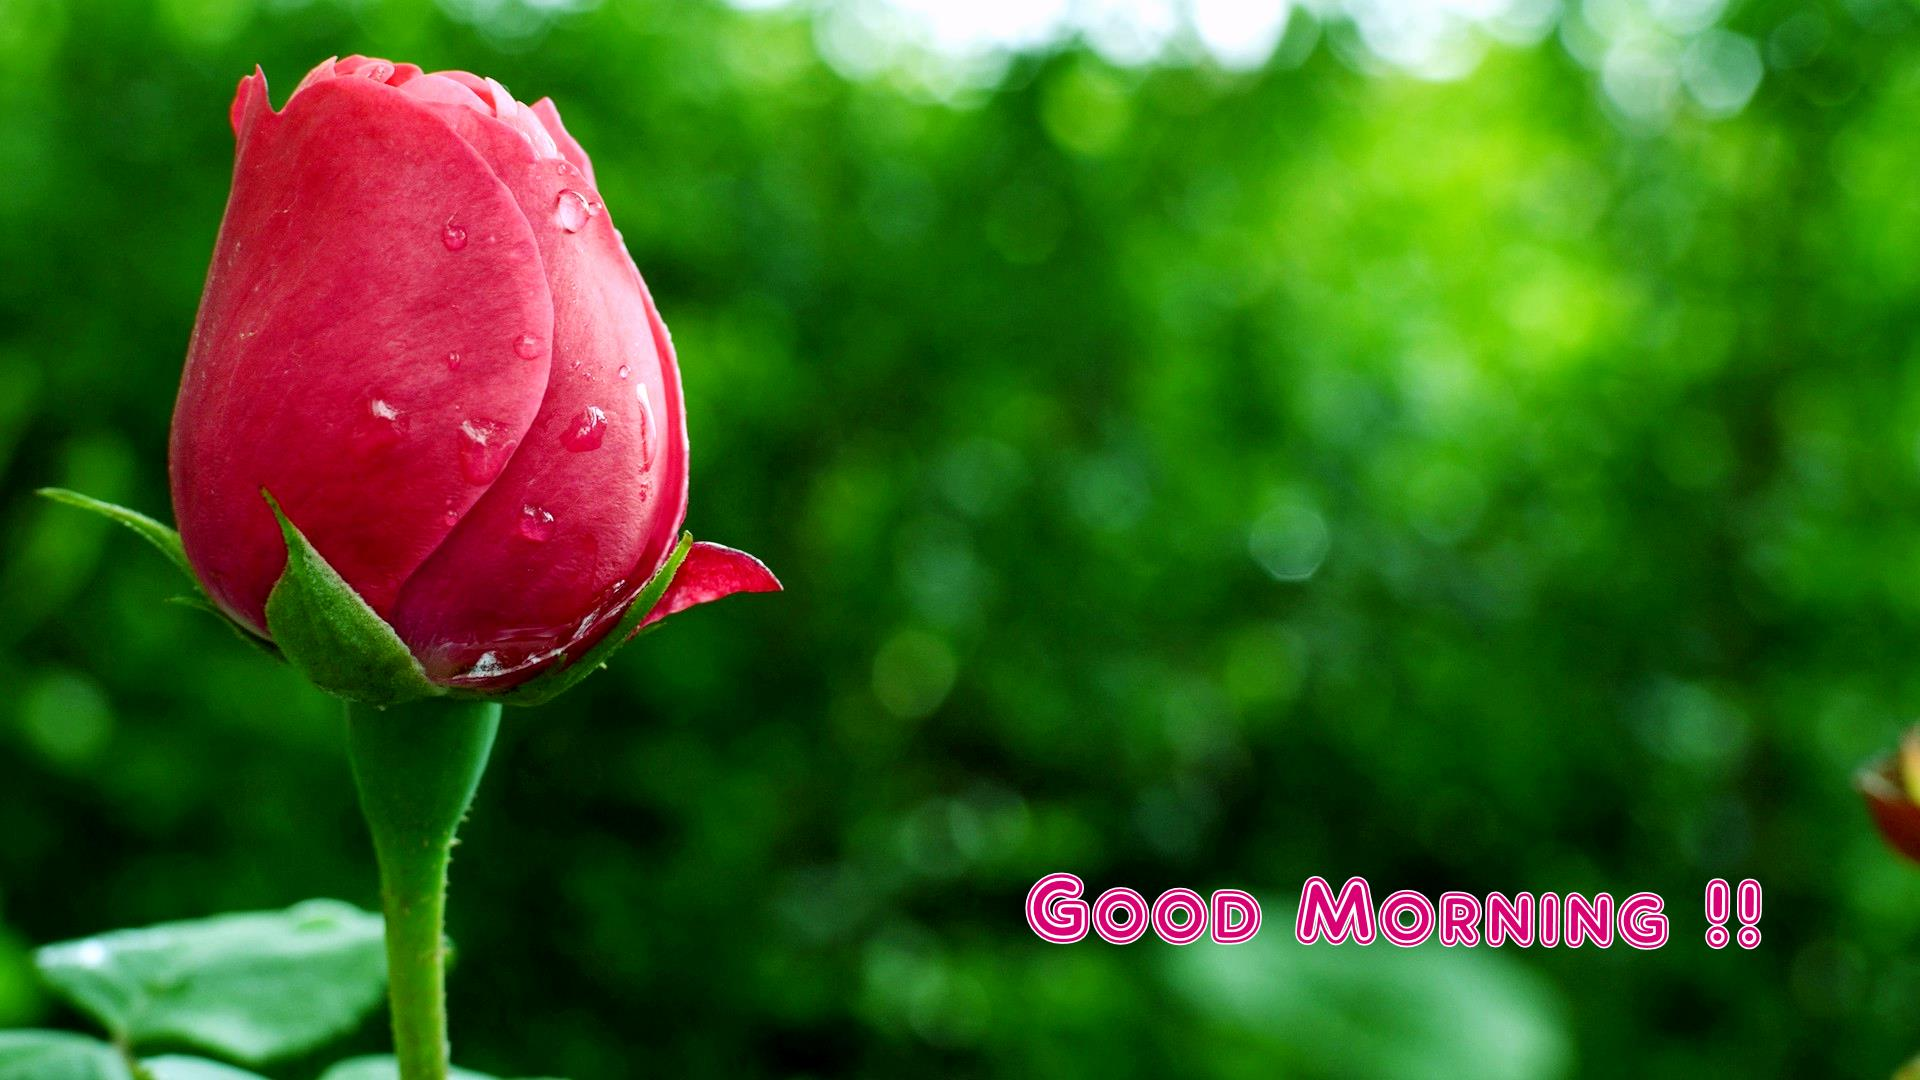 1920 x 1080 jpeg 167kB, Good Night Rose Hd Images | New Calendar ...